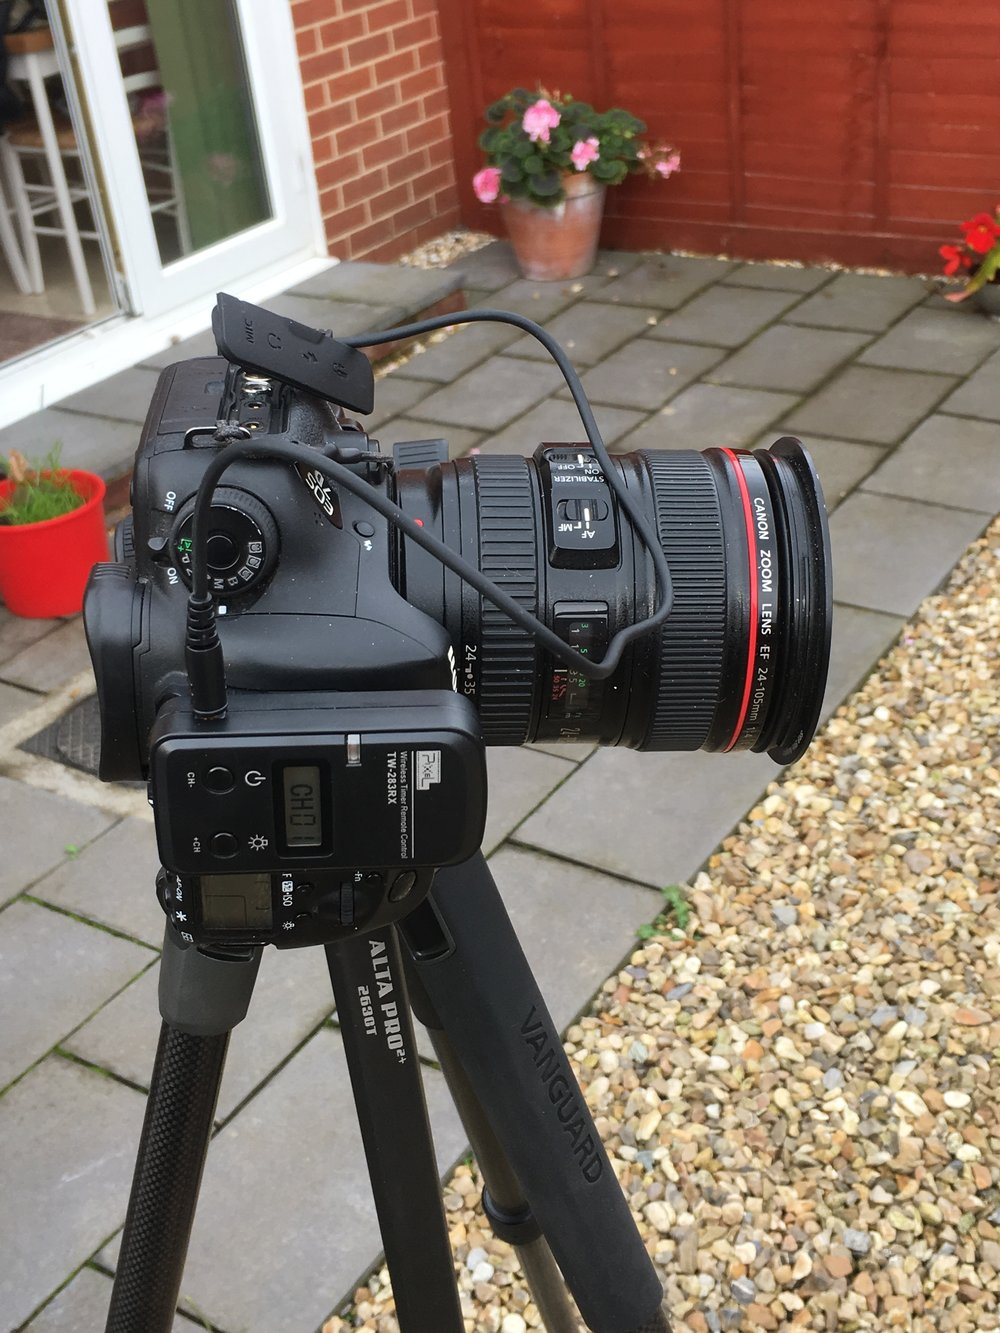 My gear, Canon EOS 7D Mk 2, Canon EF 24-105 f4 L series lens, Vanguard Alta Pro carbon fibre tripod and a cheap, but does the job fine, wireless remote, my go to set up for most of my photography  .